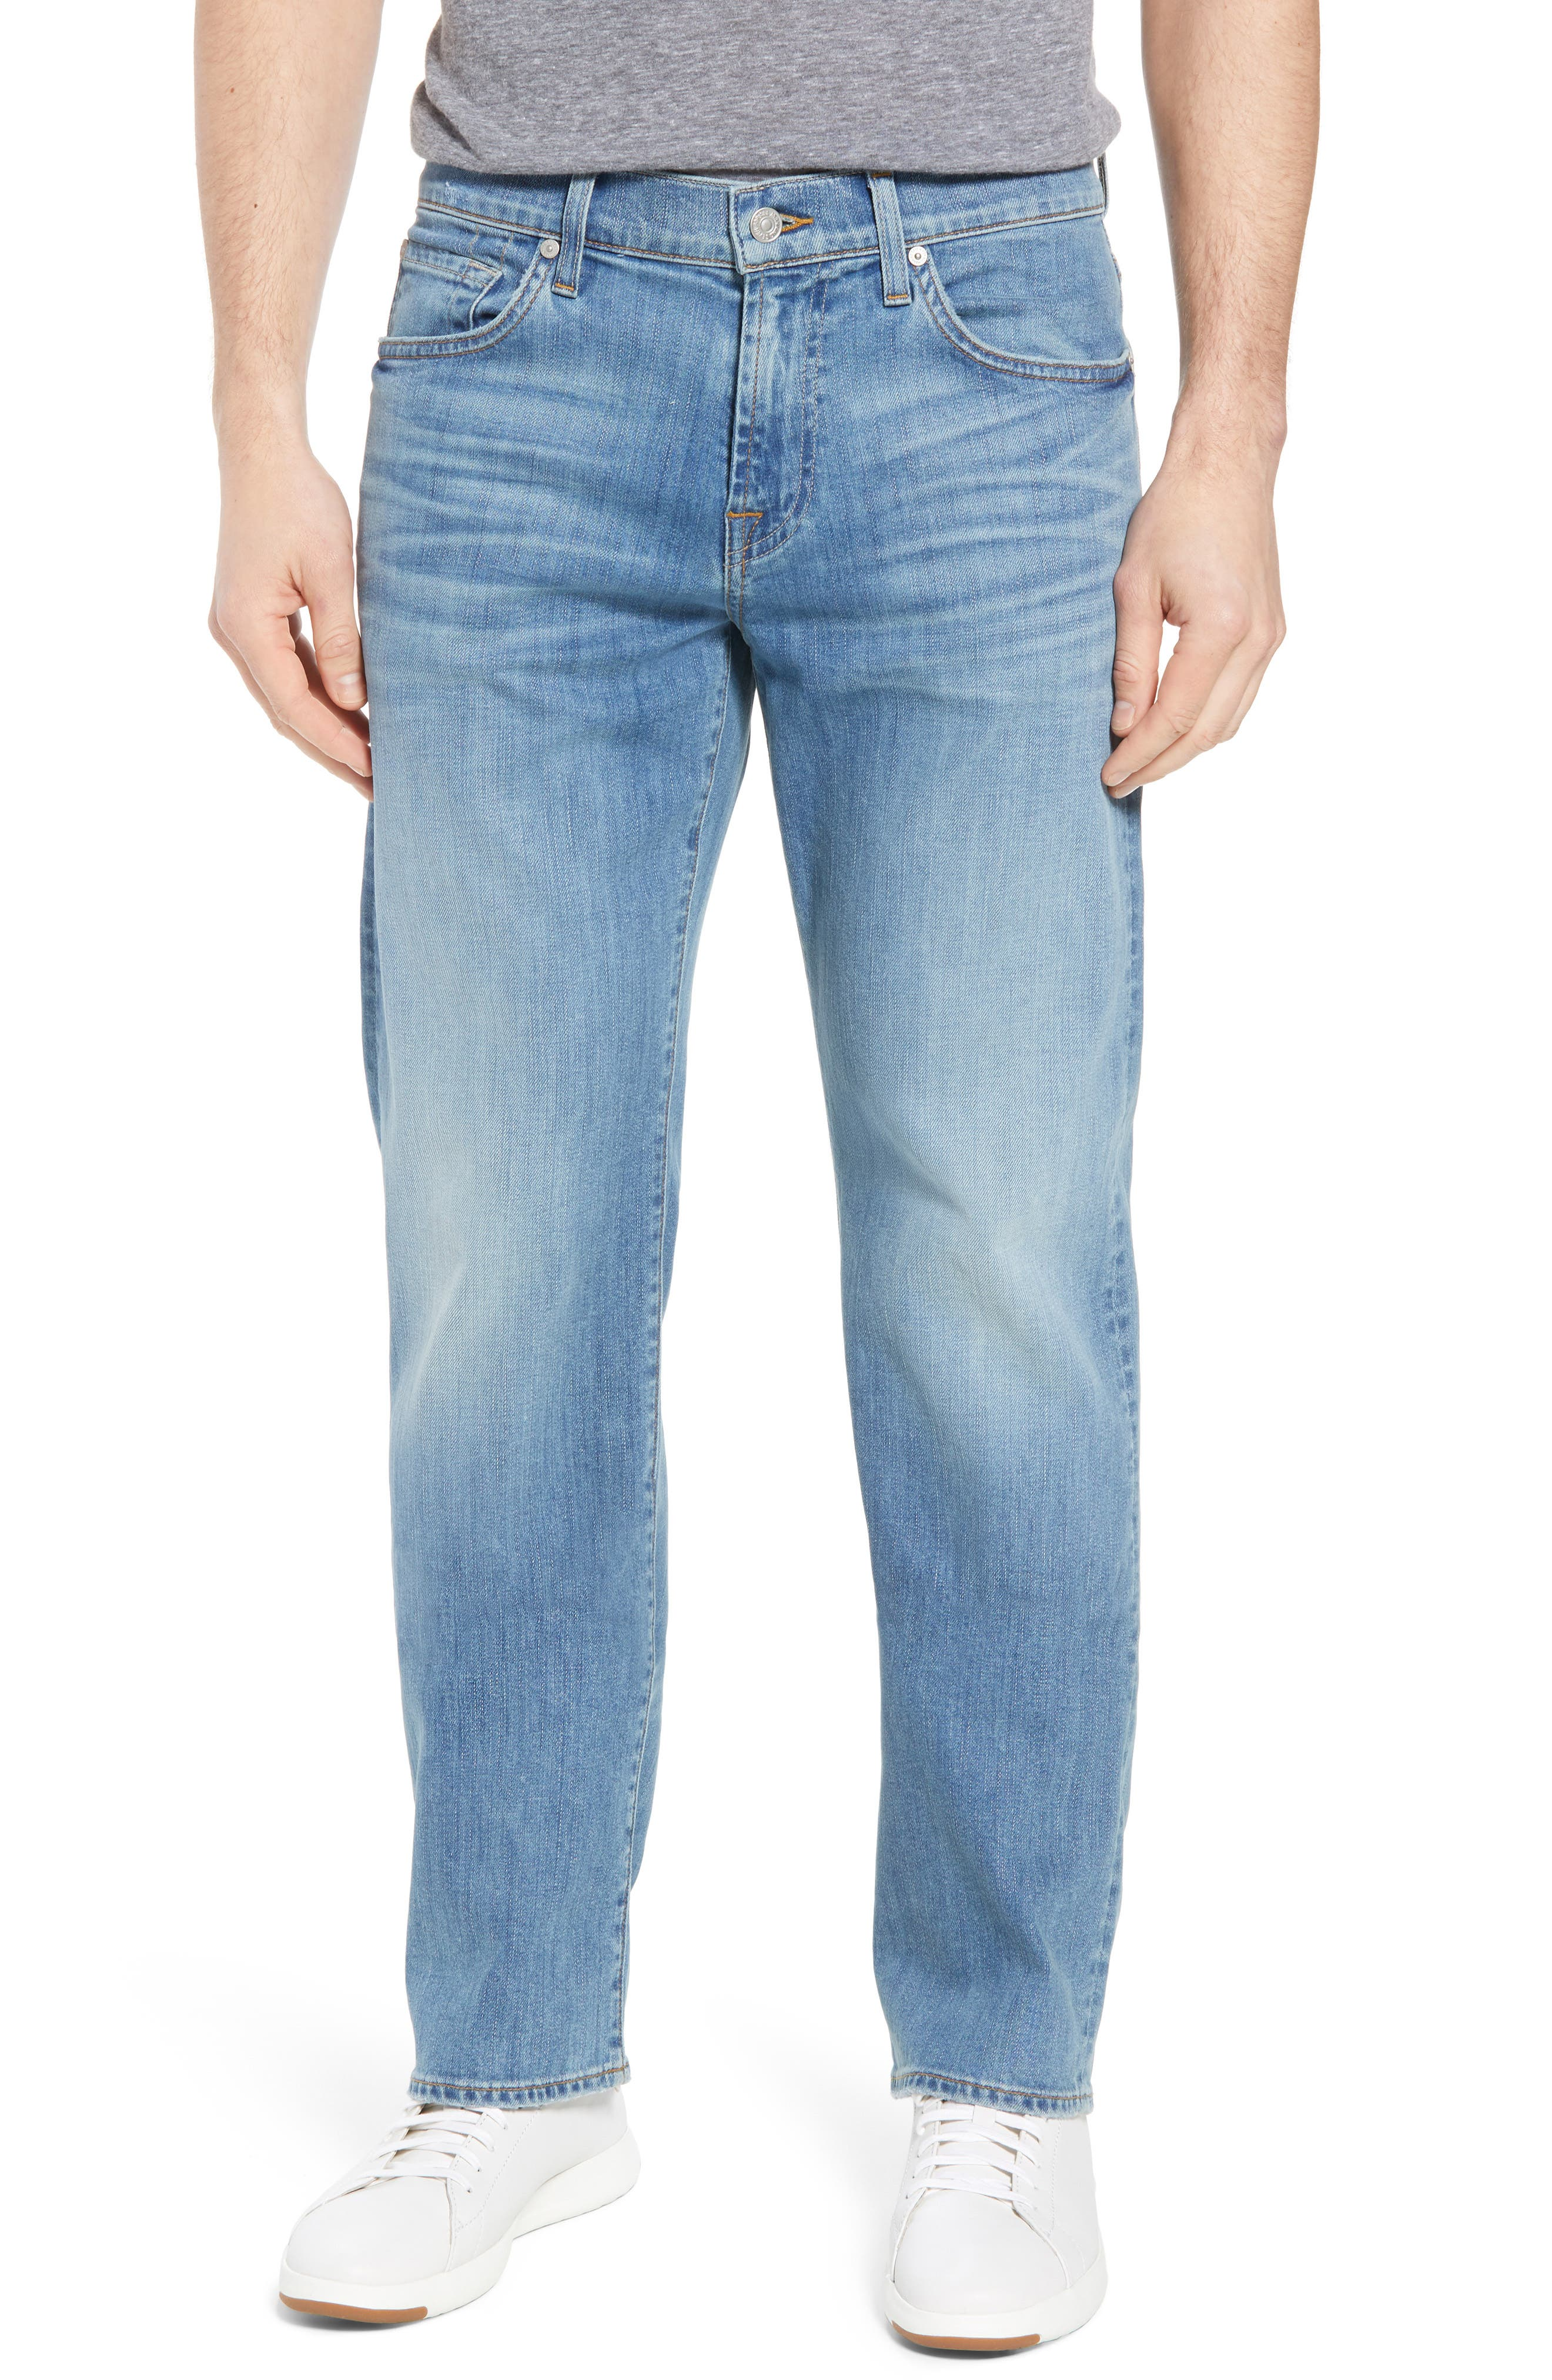 Austyn - Luxe Performance Relaxed Fit Jeans,                         Main,                         color, Vahalla